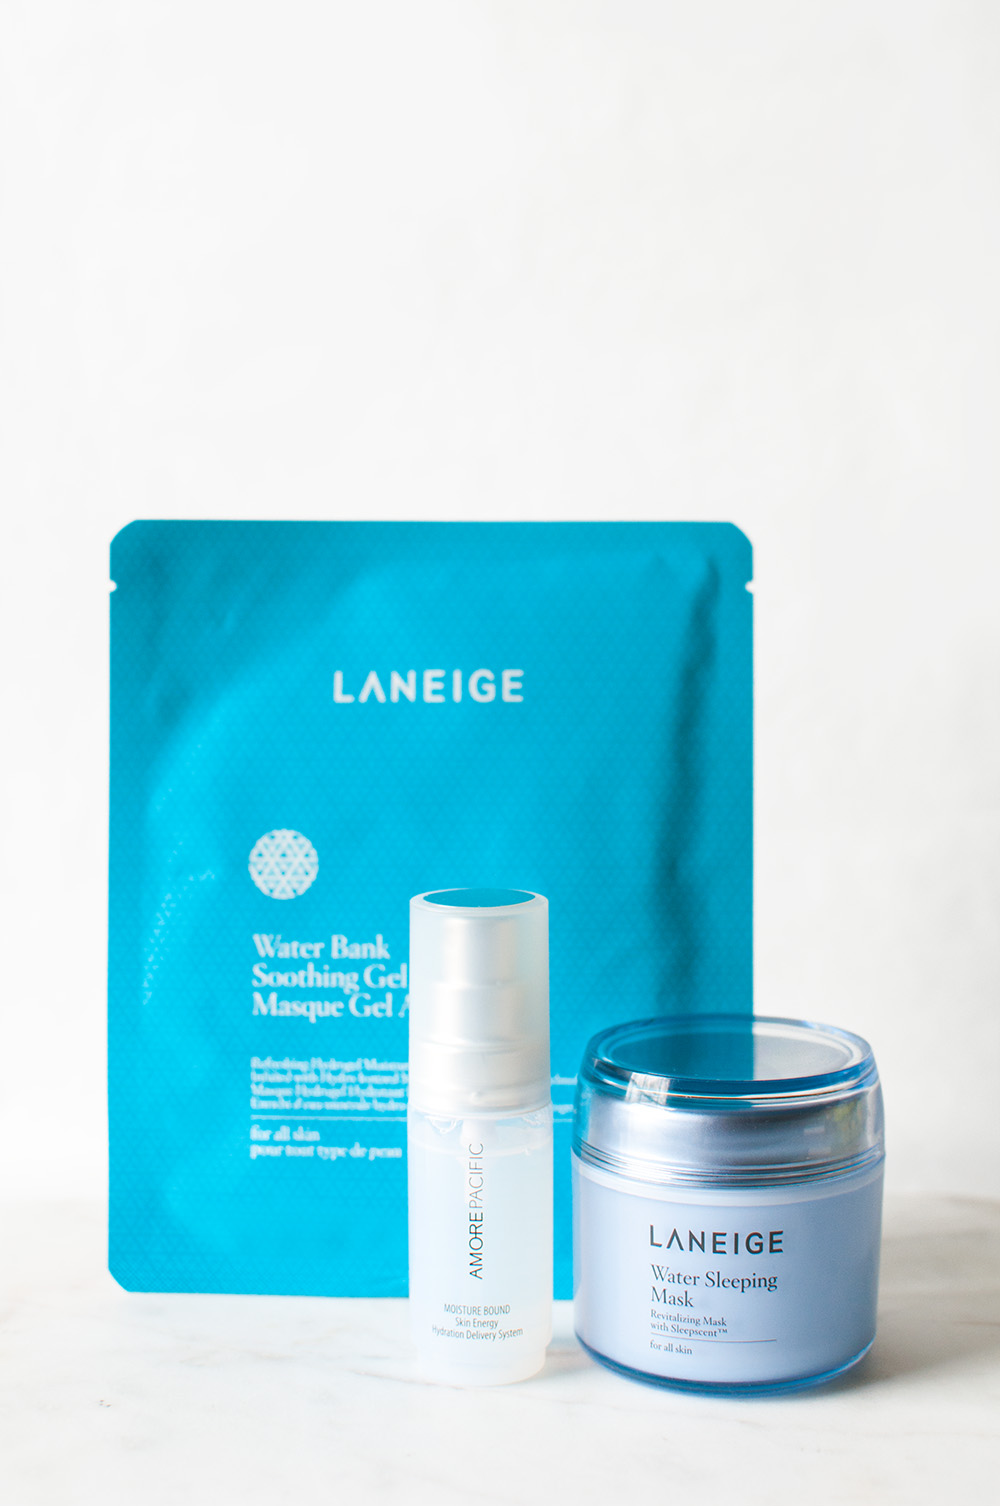 Laneige, AmorePacific, Laneige USA, AmorePacific USA